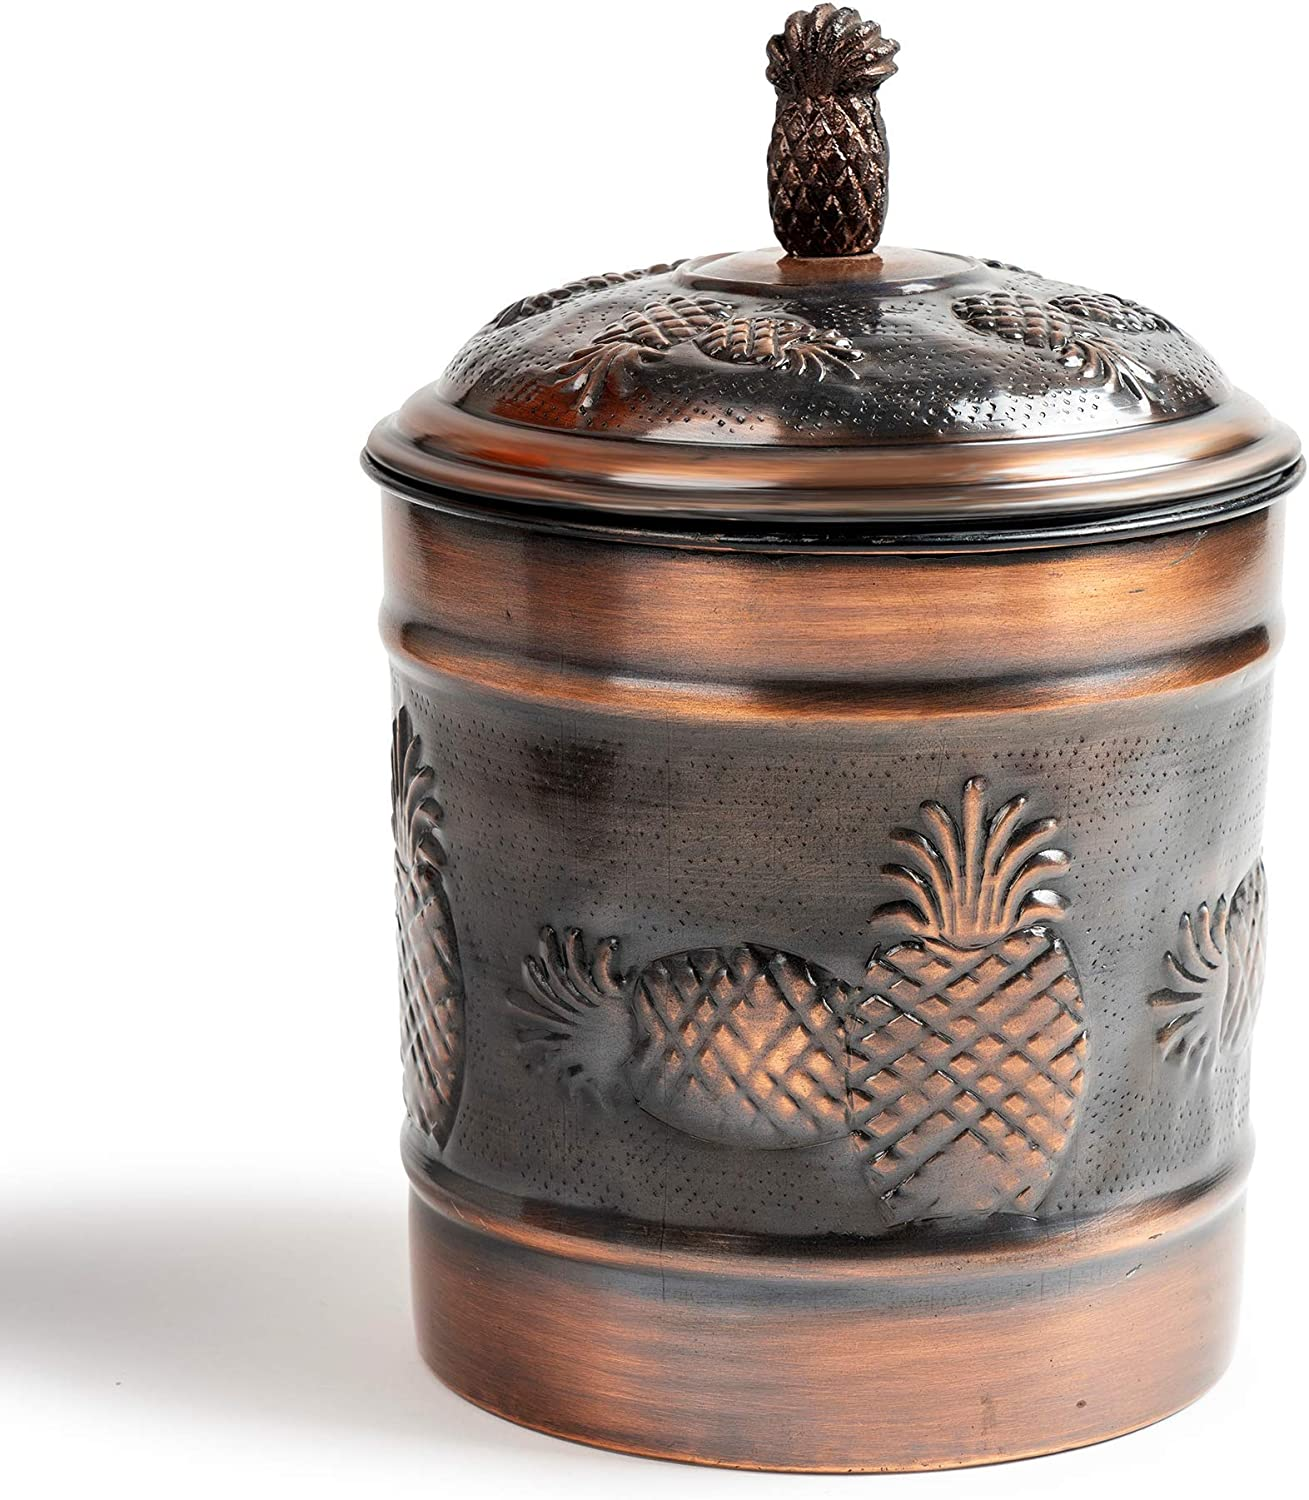 NuSteel Pineapple 4 QT Stainless Steel, Beautiful Food Storage Container for Kitchen Counter, Tea, Sugar, Coffee, Caddy, Flour Canister with Rubber Seal lid, Copper Antique